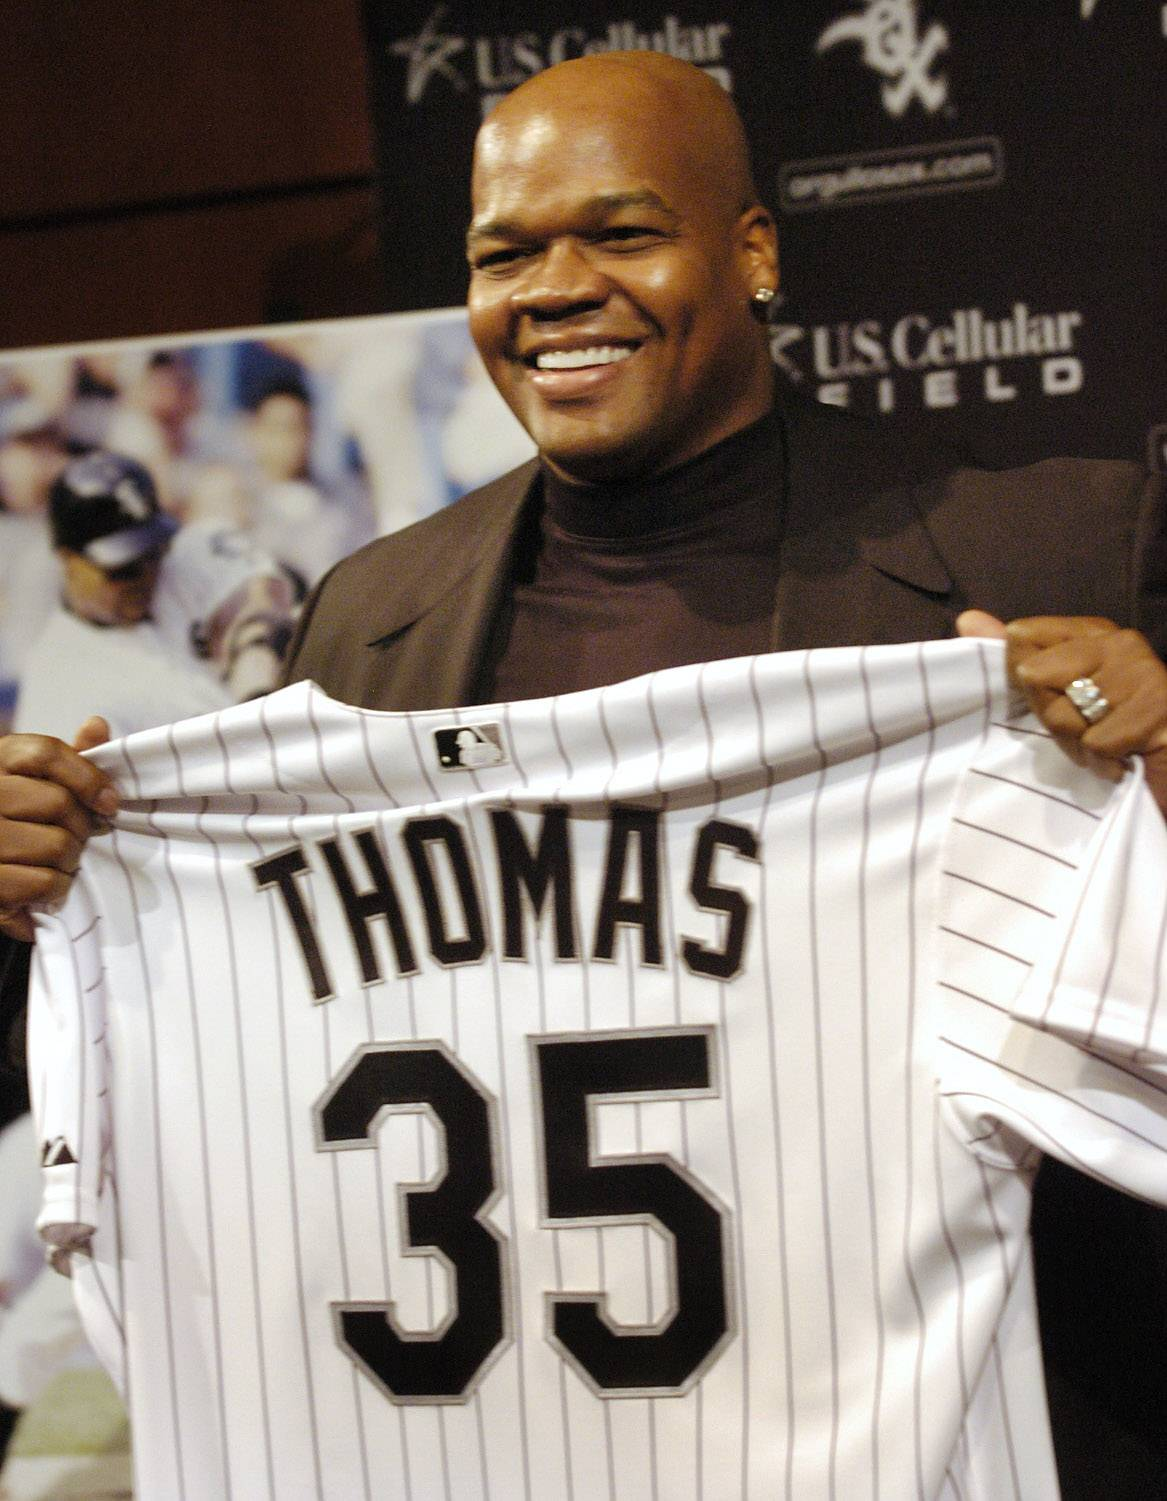 Frank Thomas holds up his soon to be retired jersey after announcing his retirement.